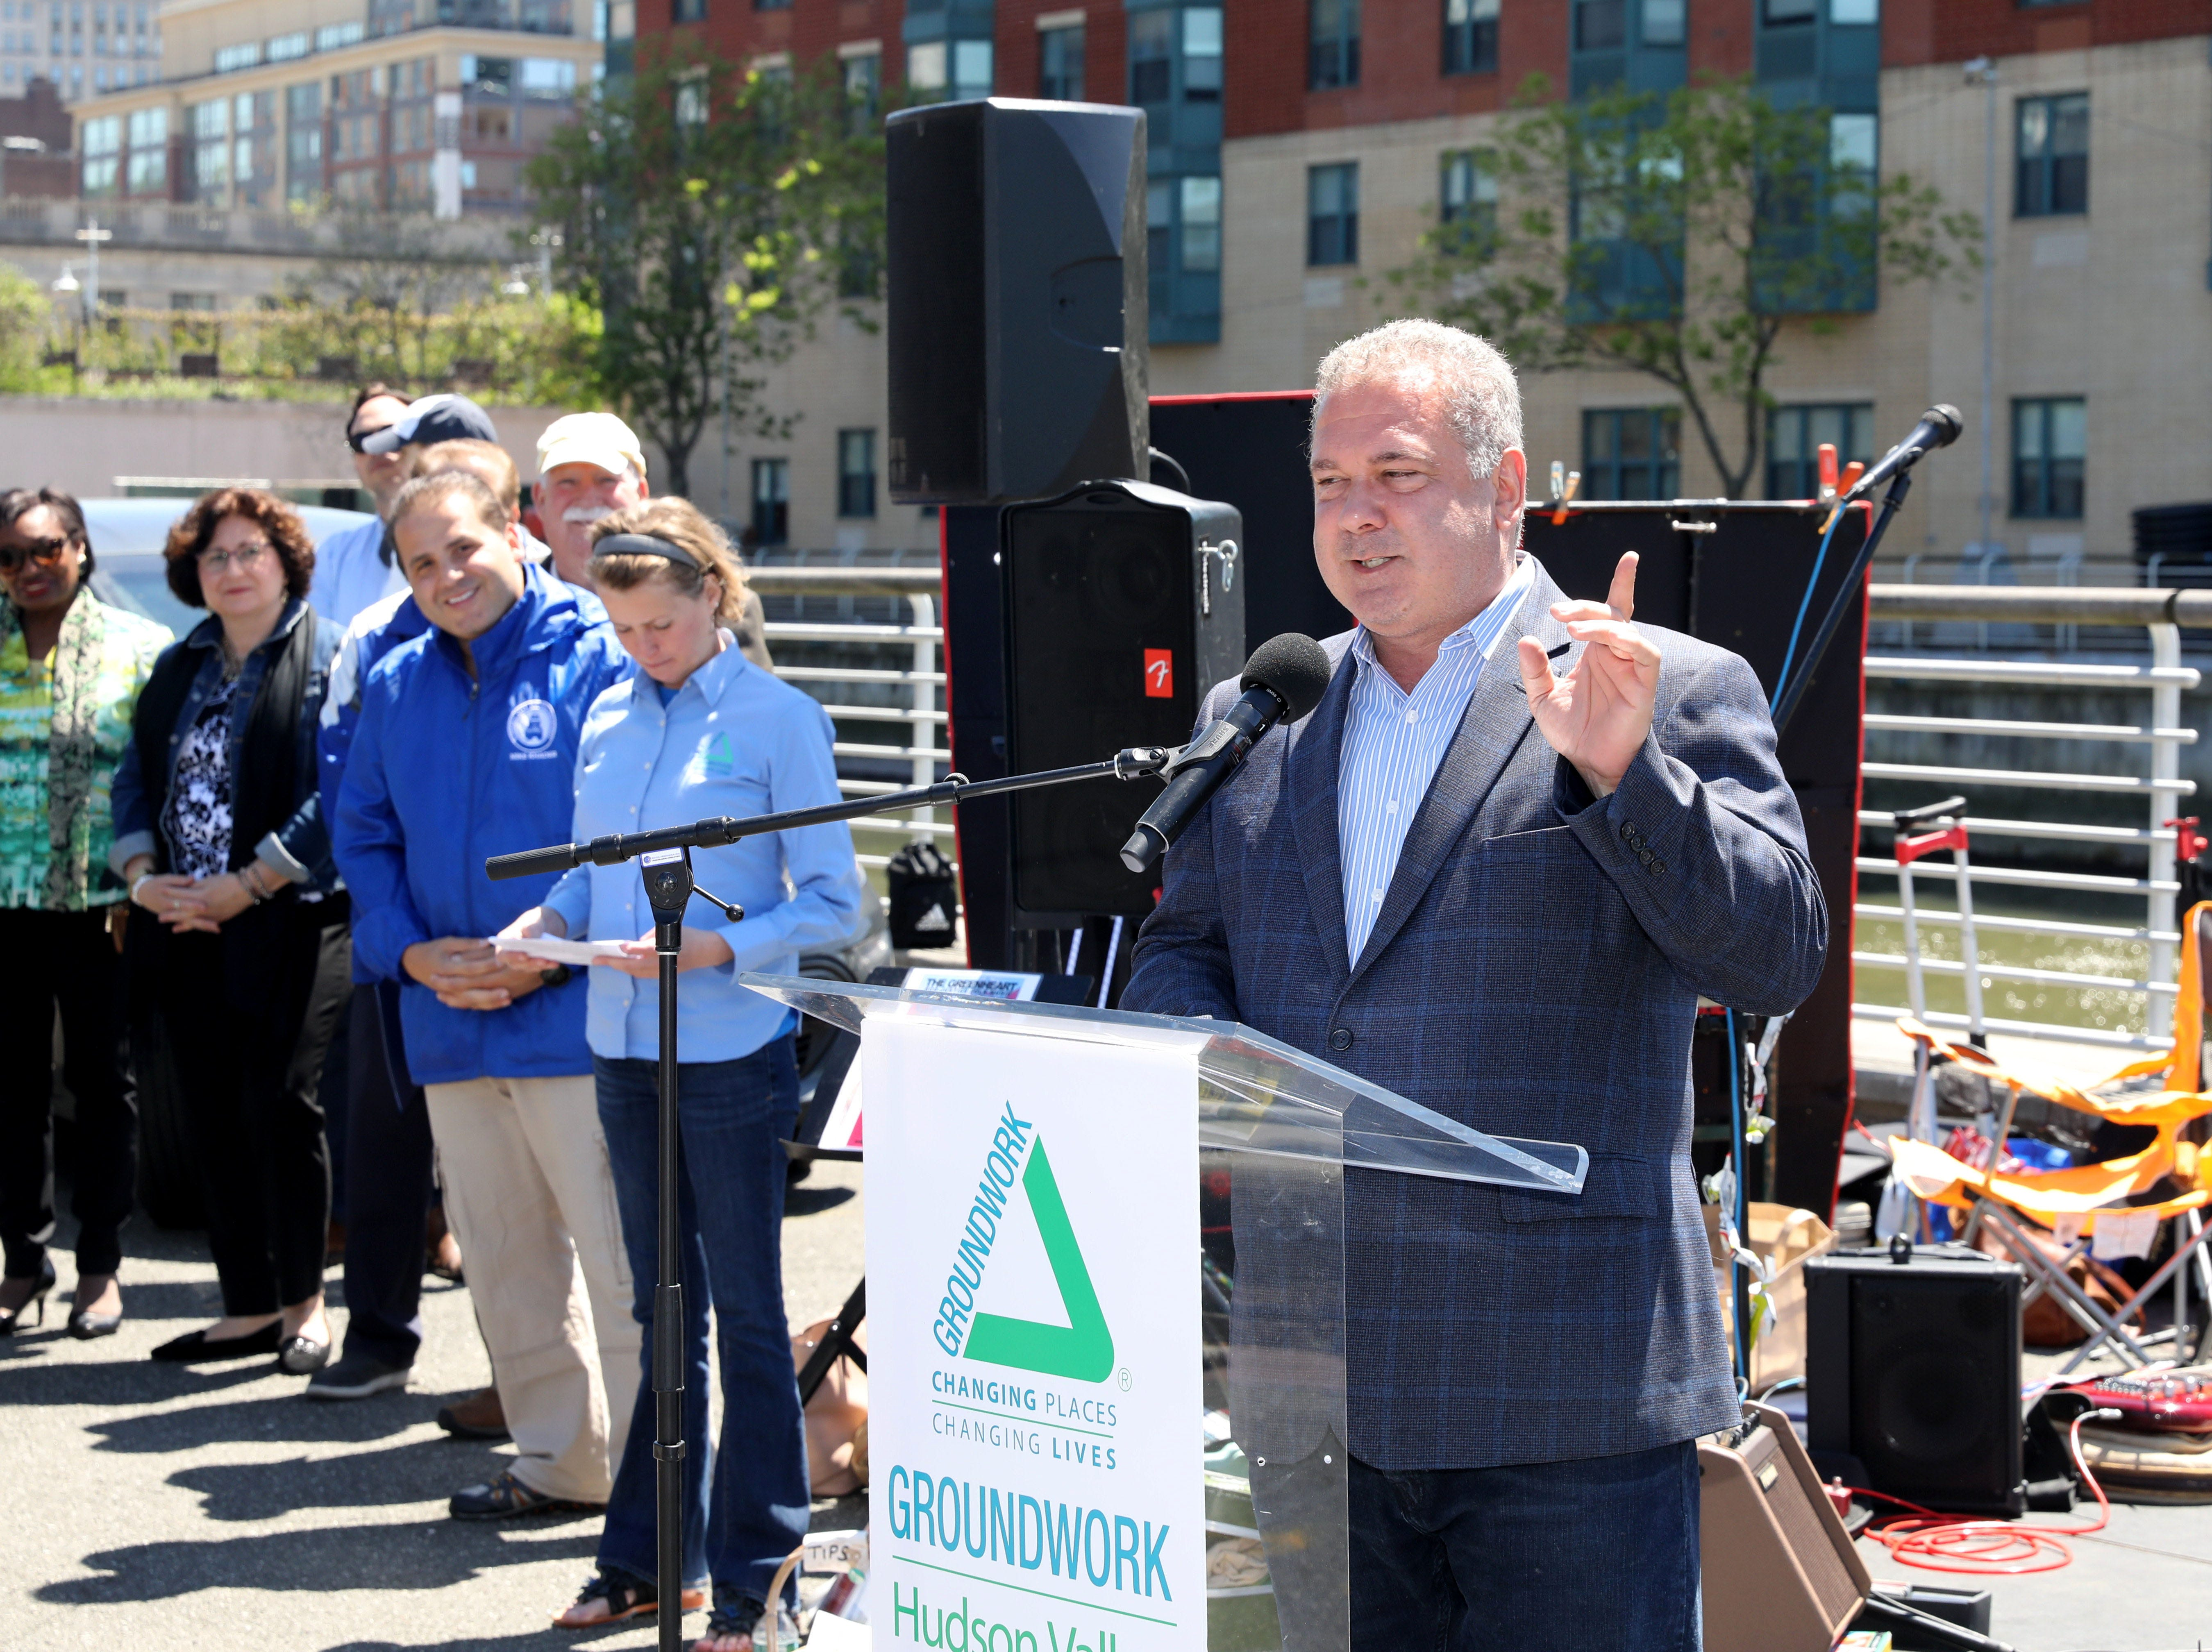 Yonkers Mayor Mike Spano welcomes the crowd to the Science Barge, as it enjoys its 11th annual opening on the Hudson River in Yonkers, May 11, 2019. The floating environmental education center has undergone an almost $1million enhancement, completed over the past two years.